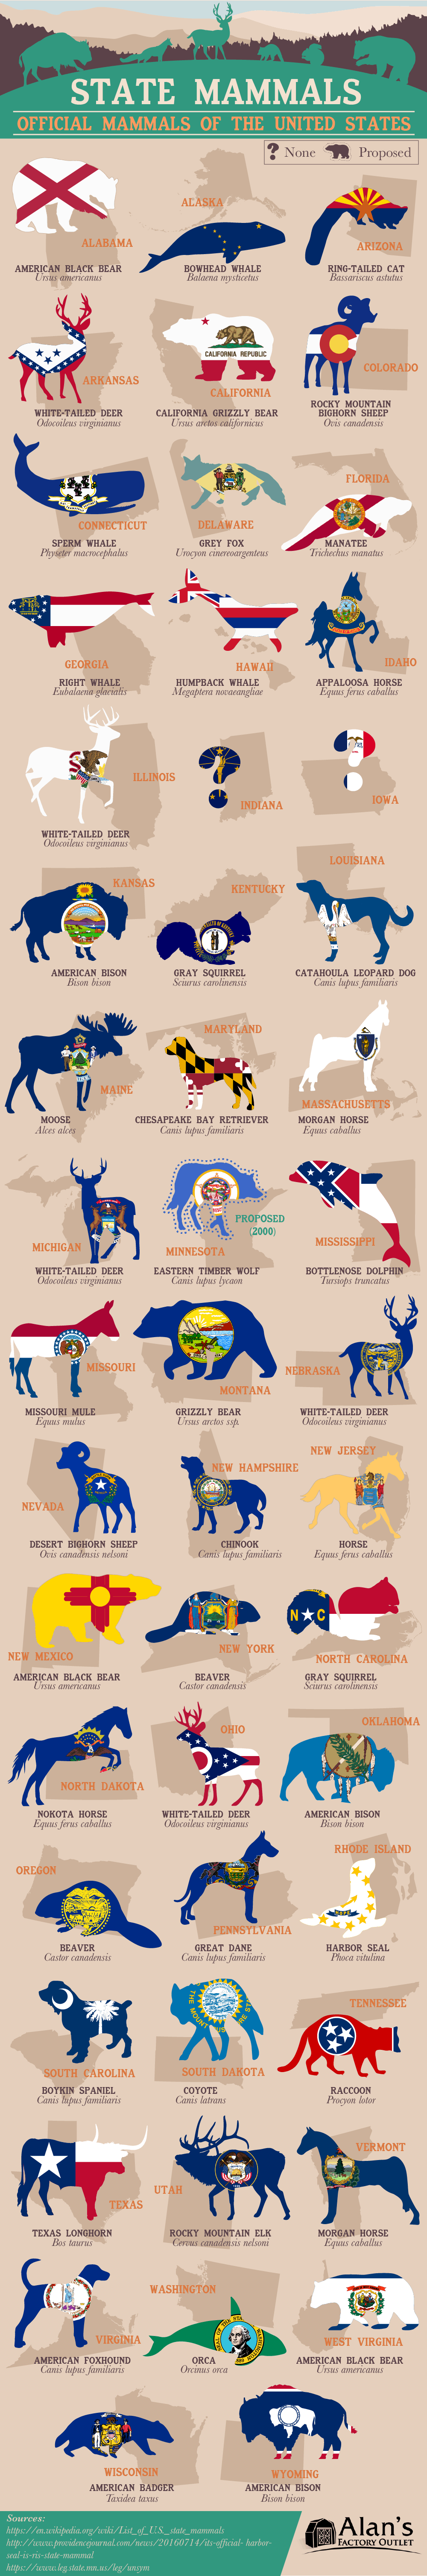 State Mammals Official Mammals of the United States